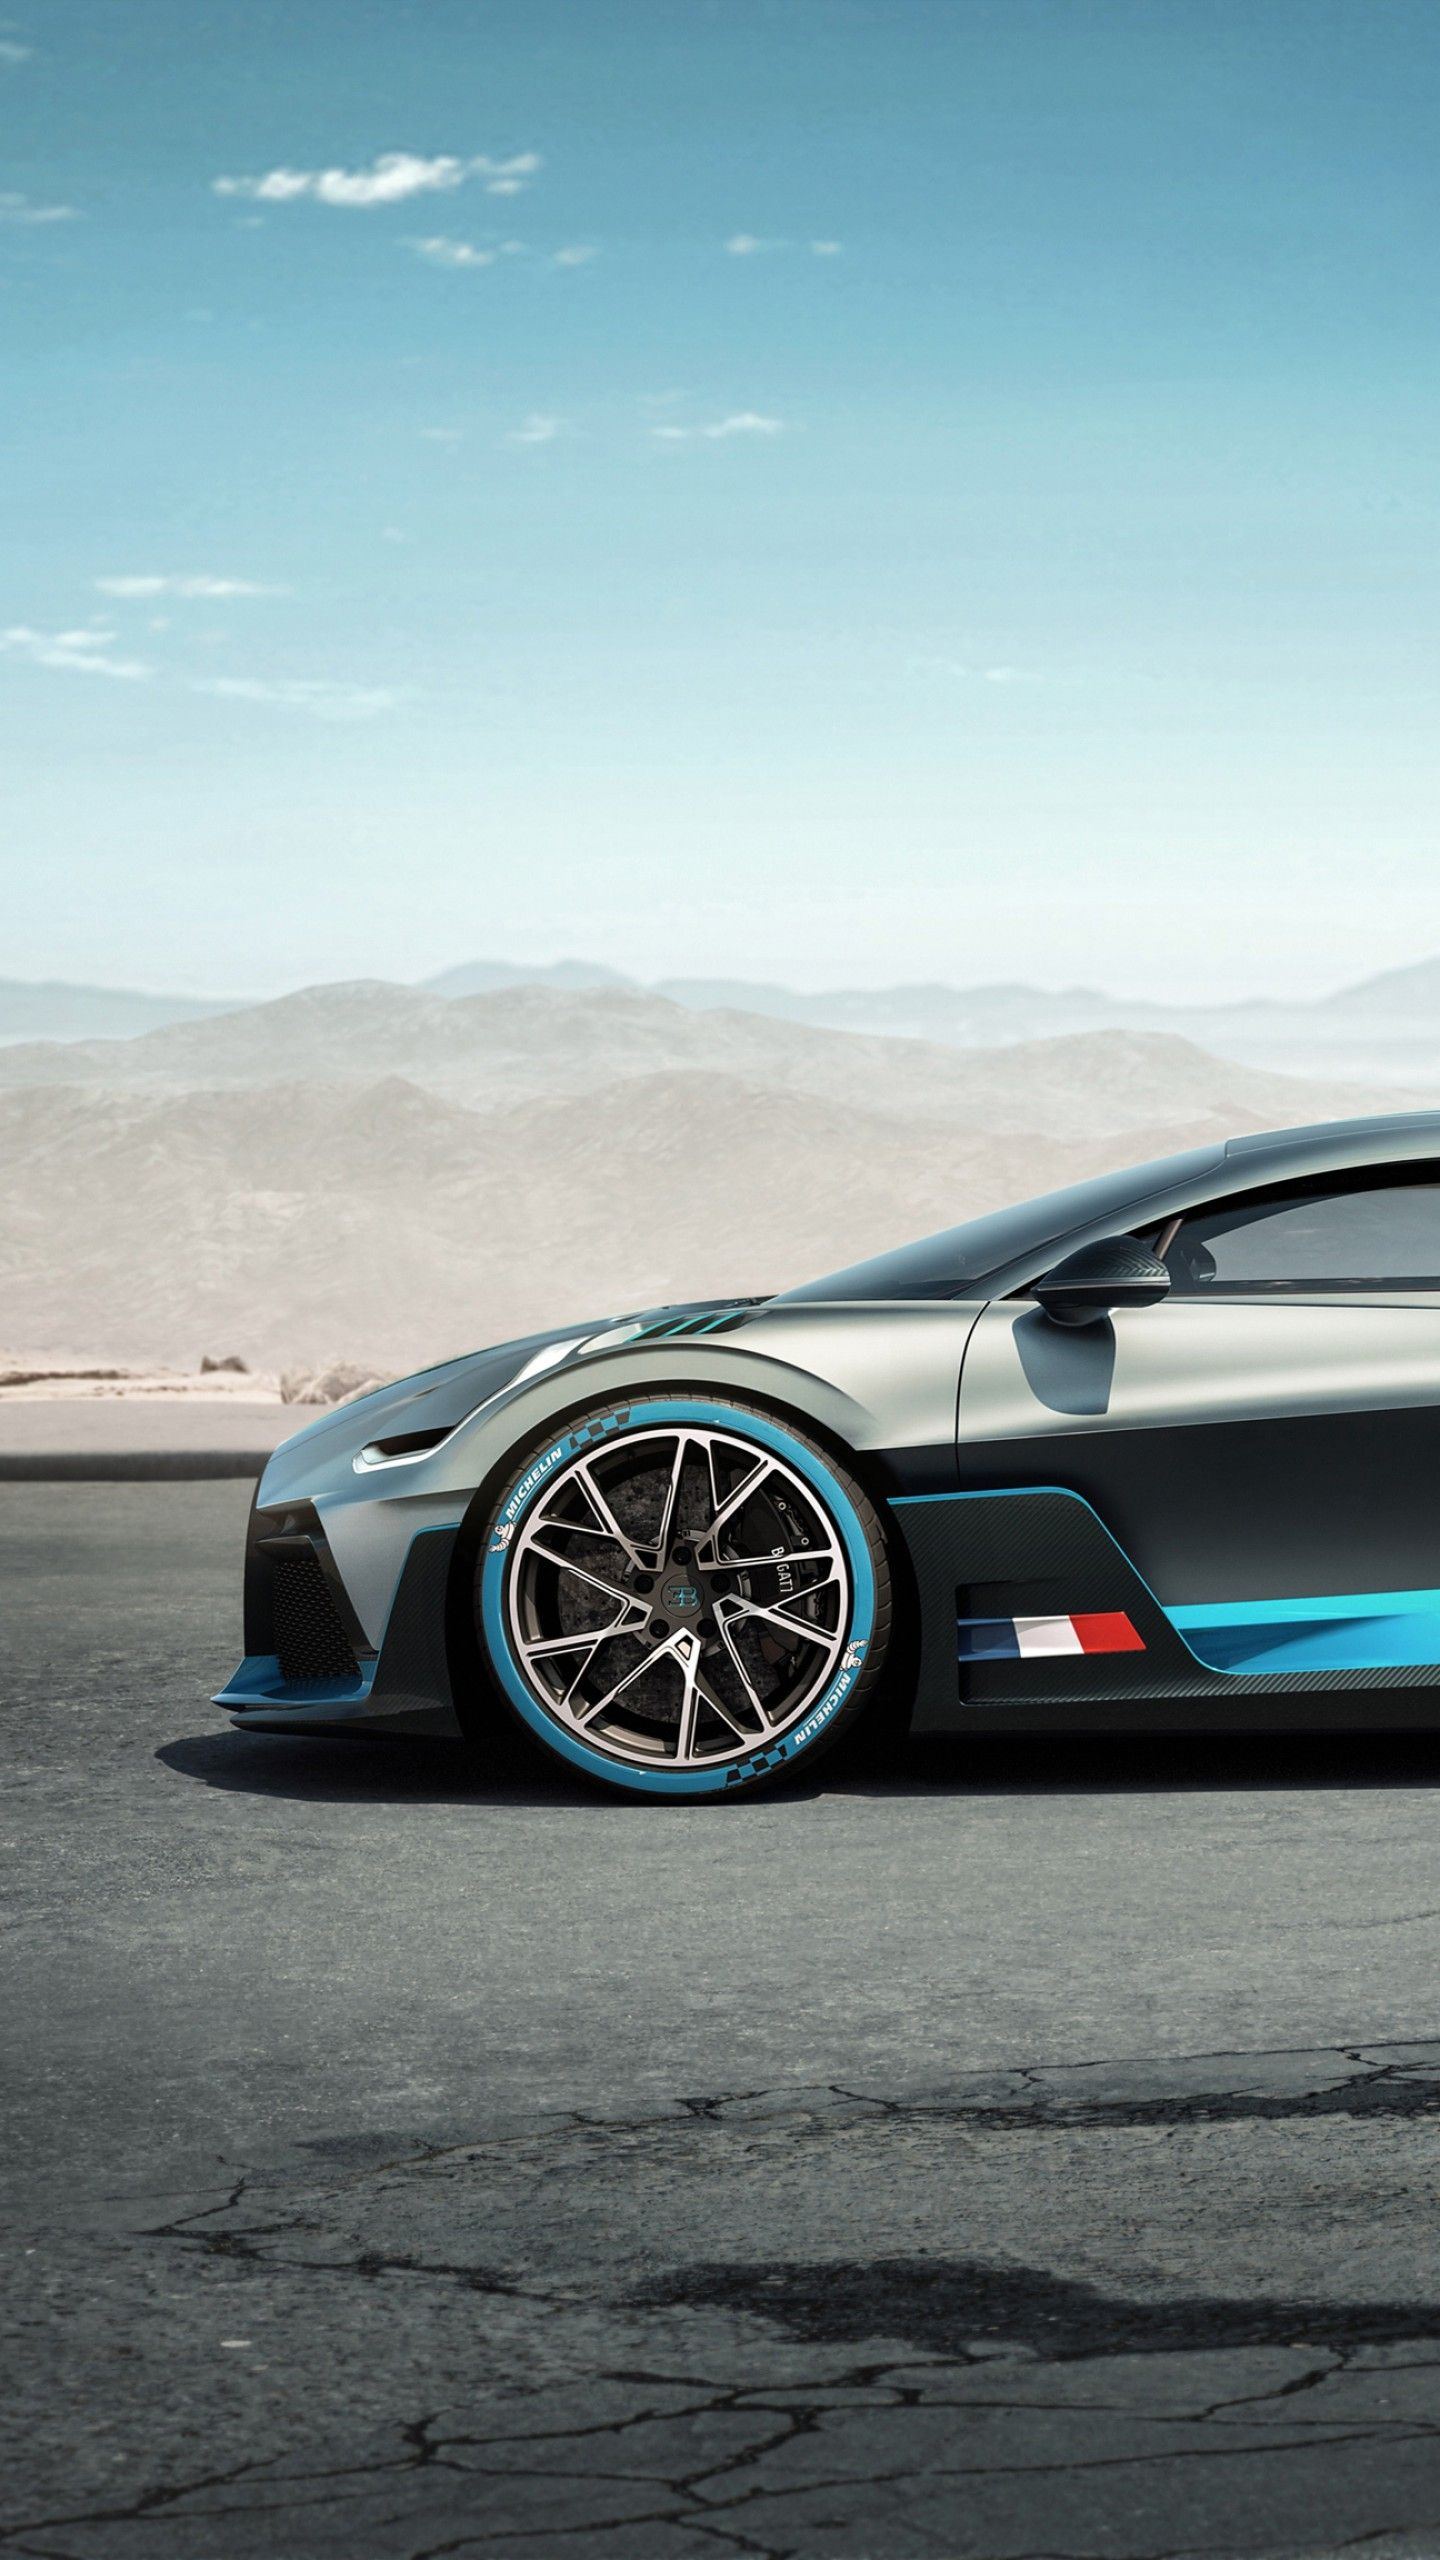 Hd Wallpapers Of Bugatti Divo 1440x2560 Wallpaper Teahub Io